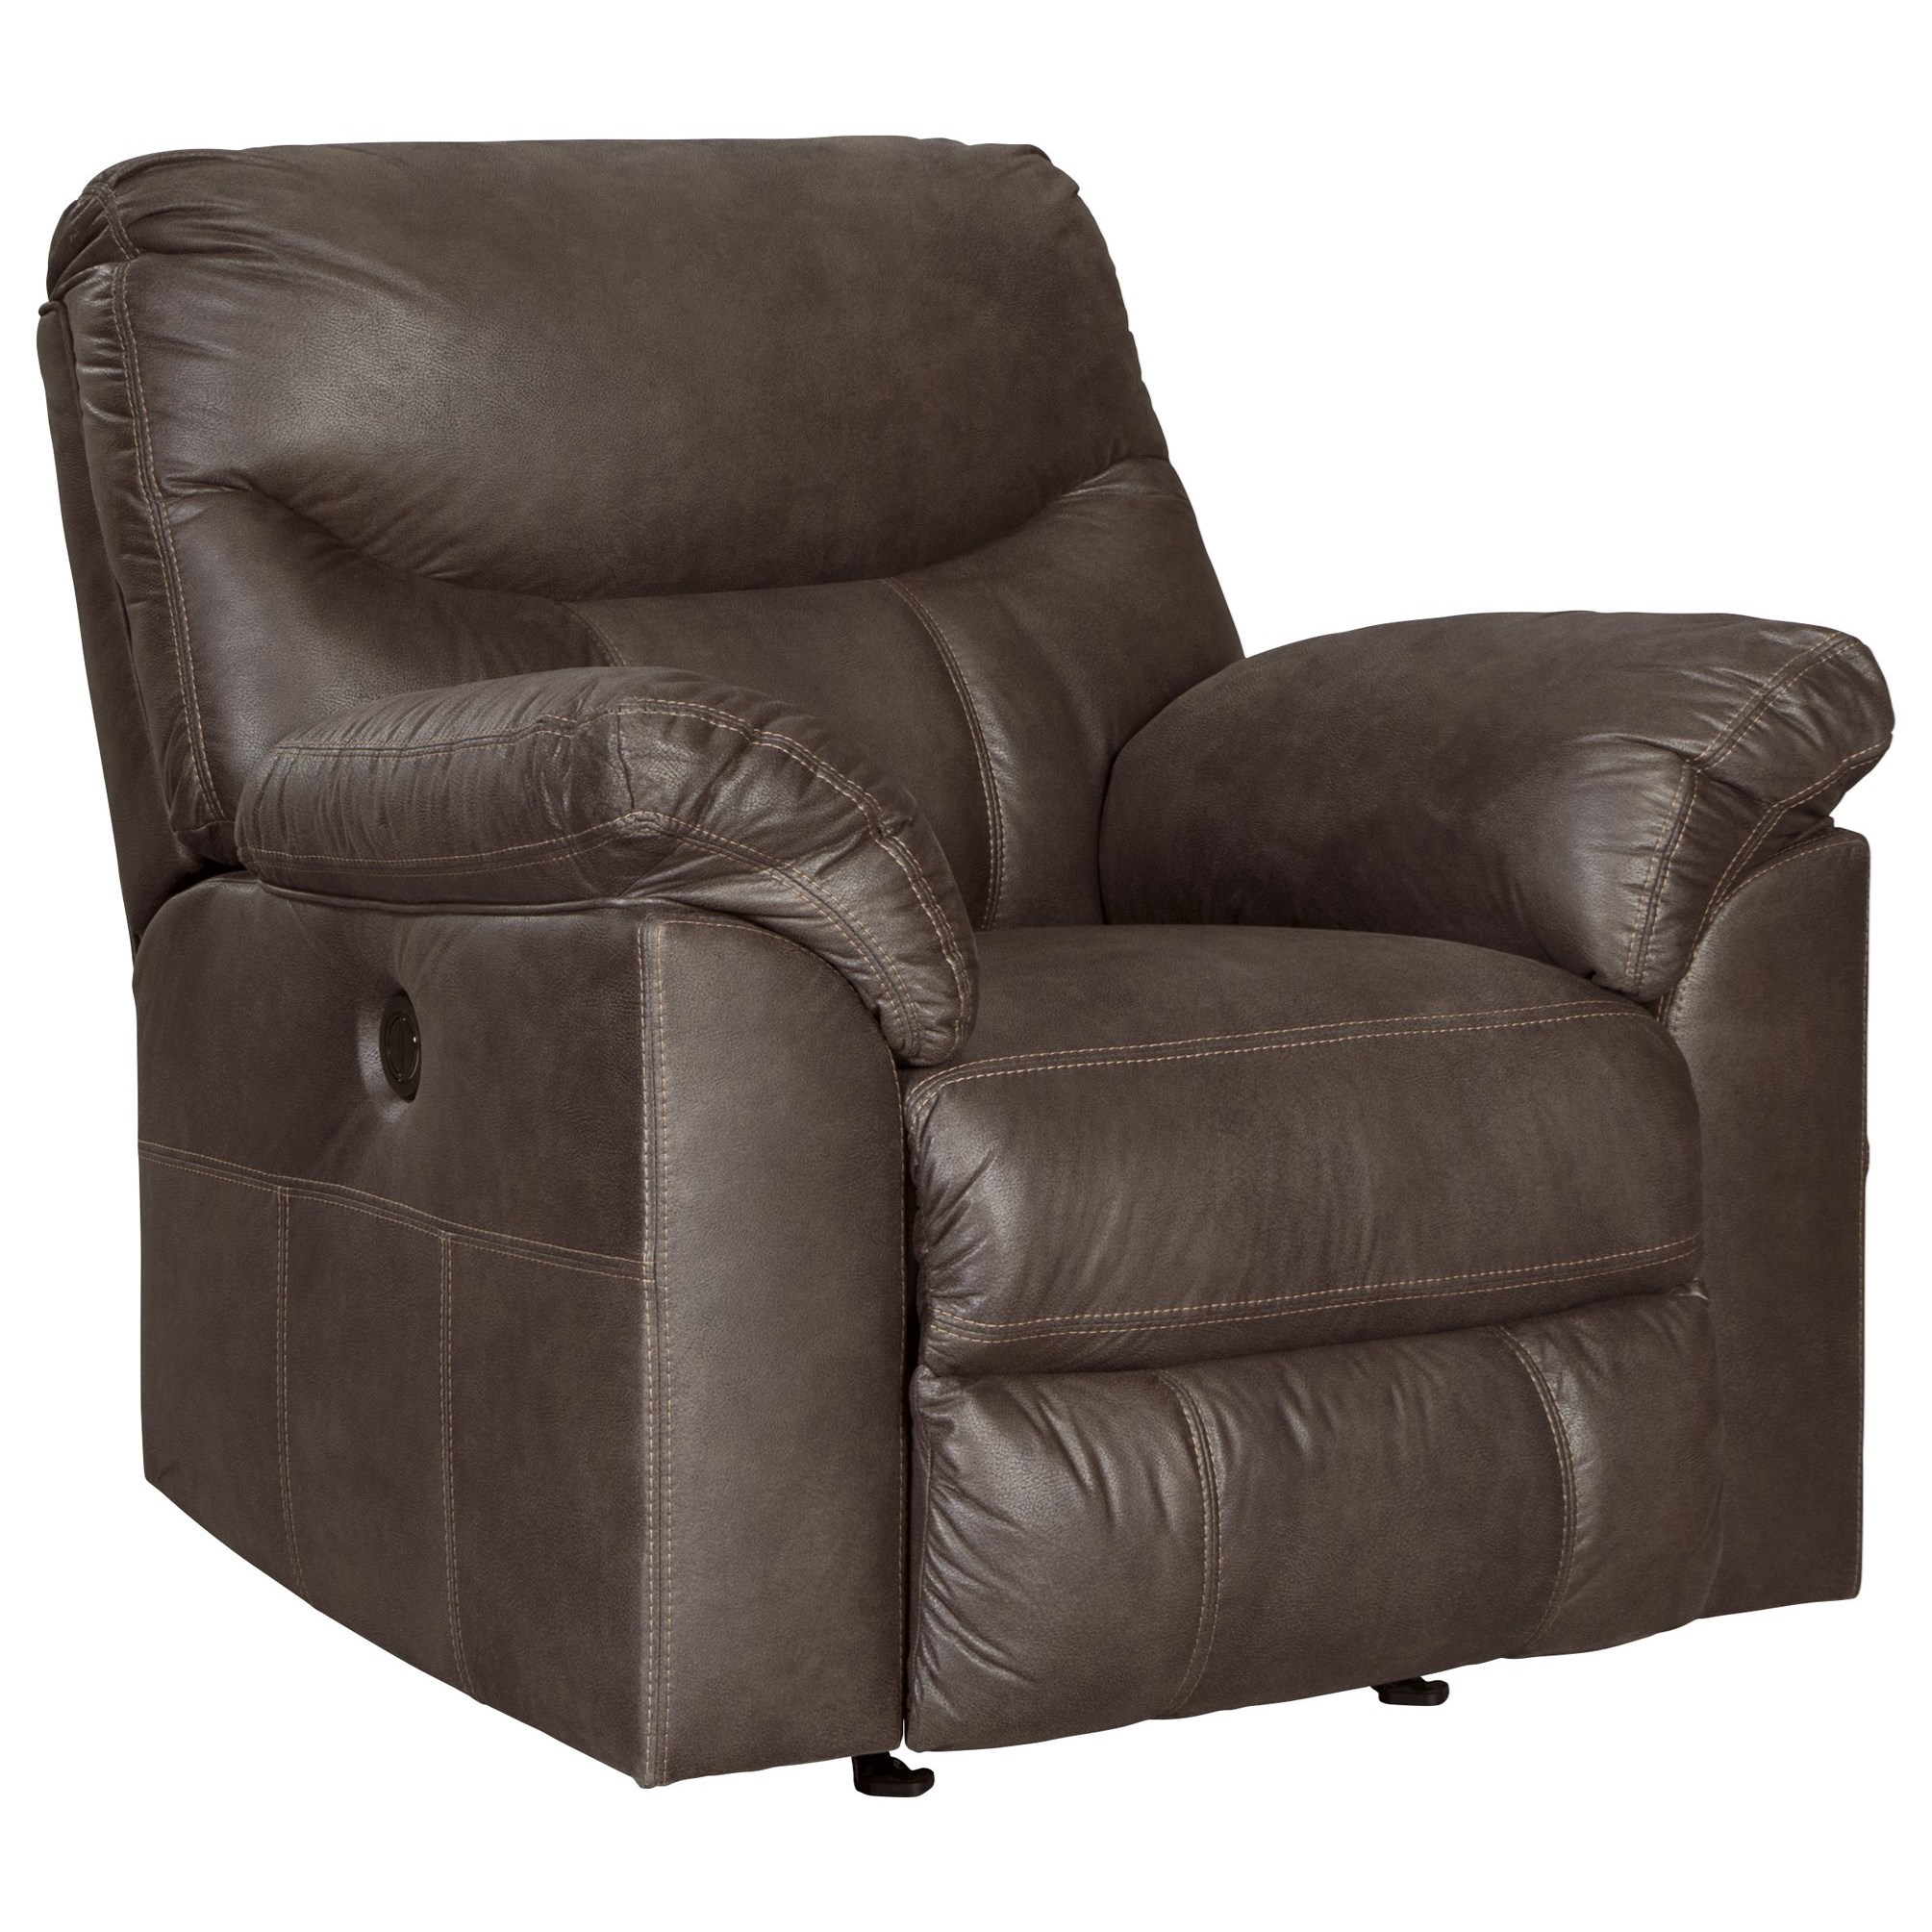 Boxberg Power Rocker Recliner by Signature Design by Ashley at Northeast Factory Direct